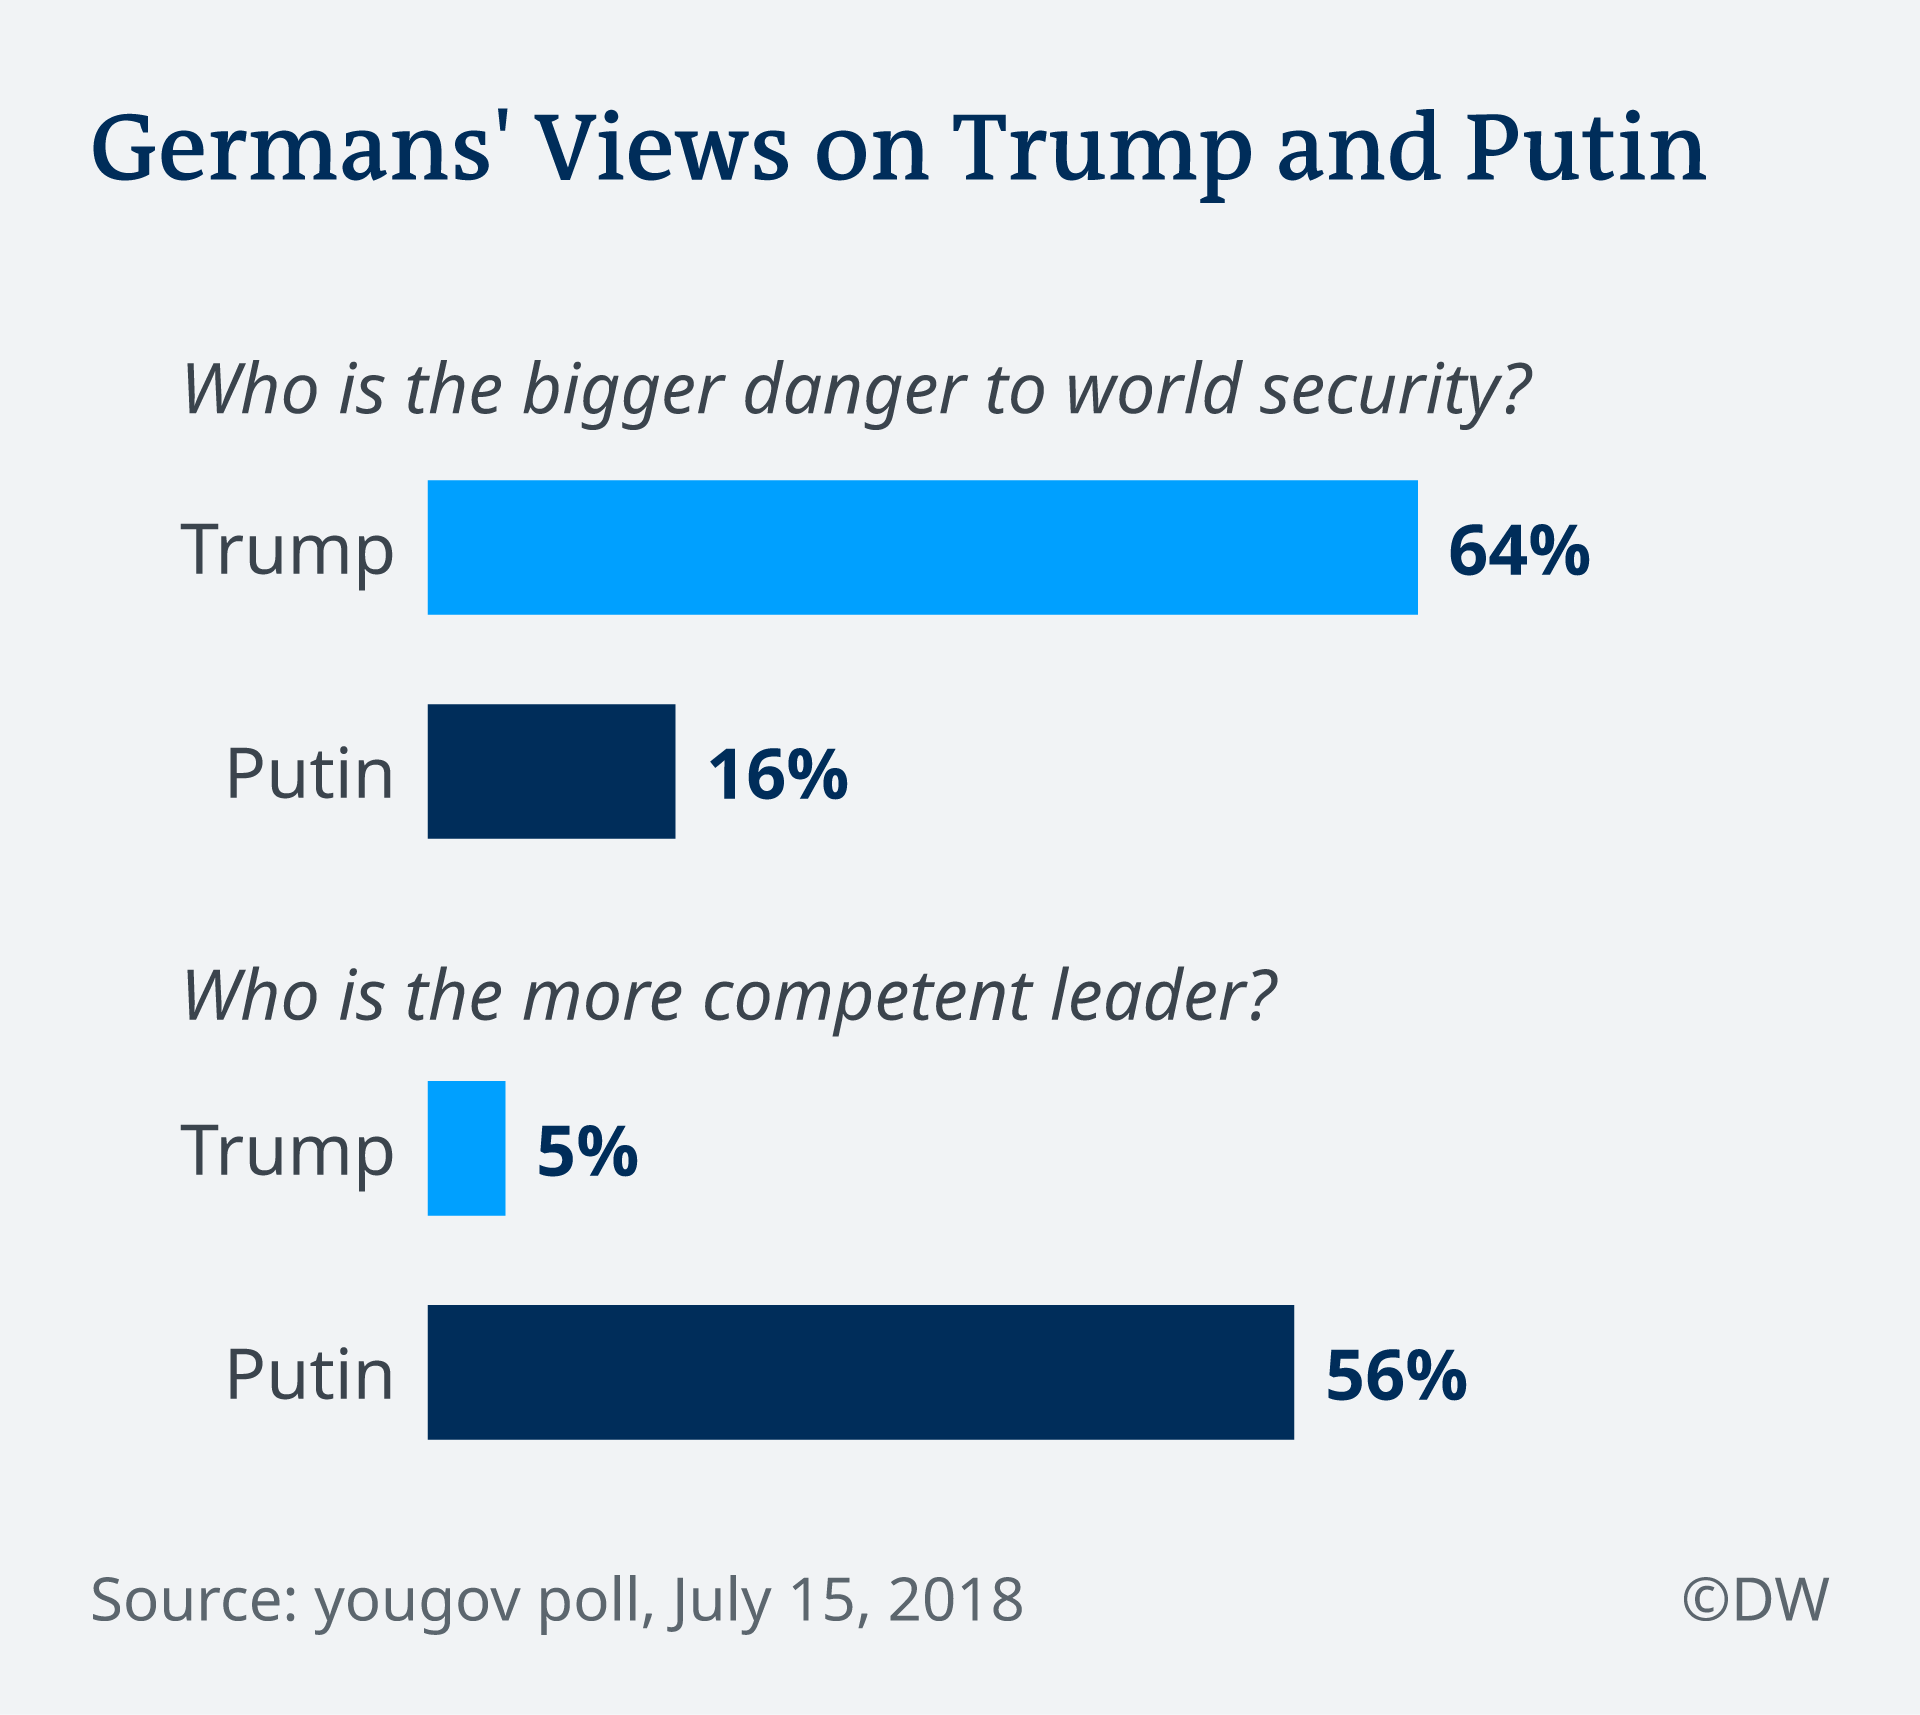 Germans' views on Trump and Putin